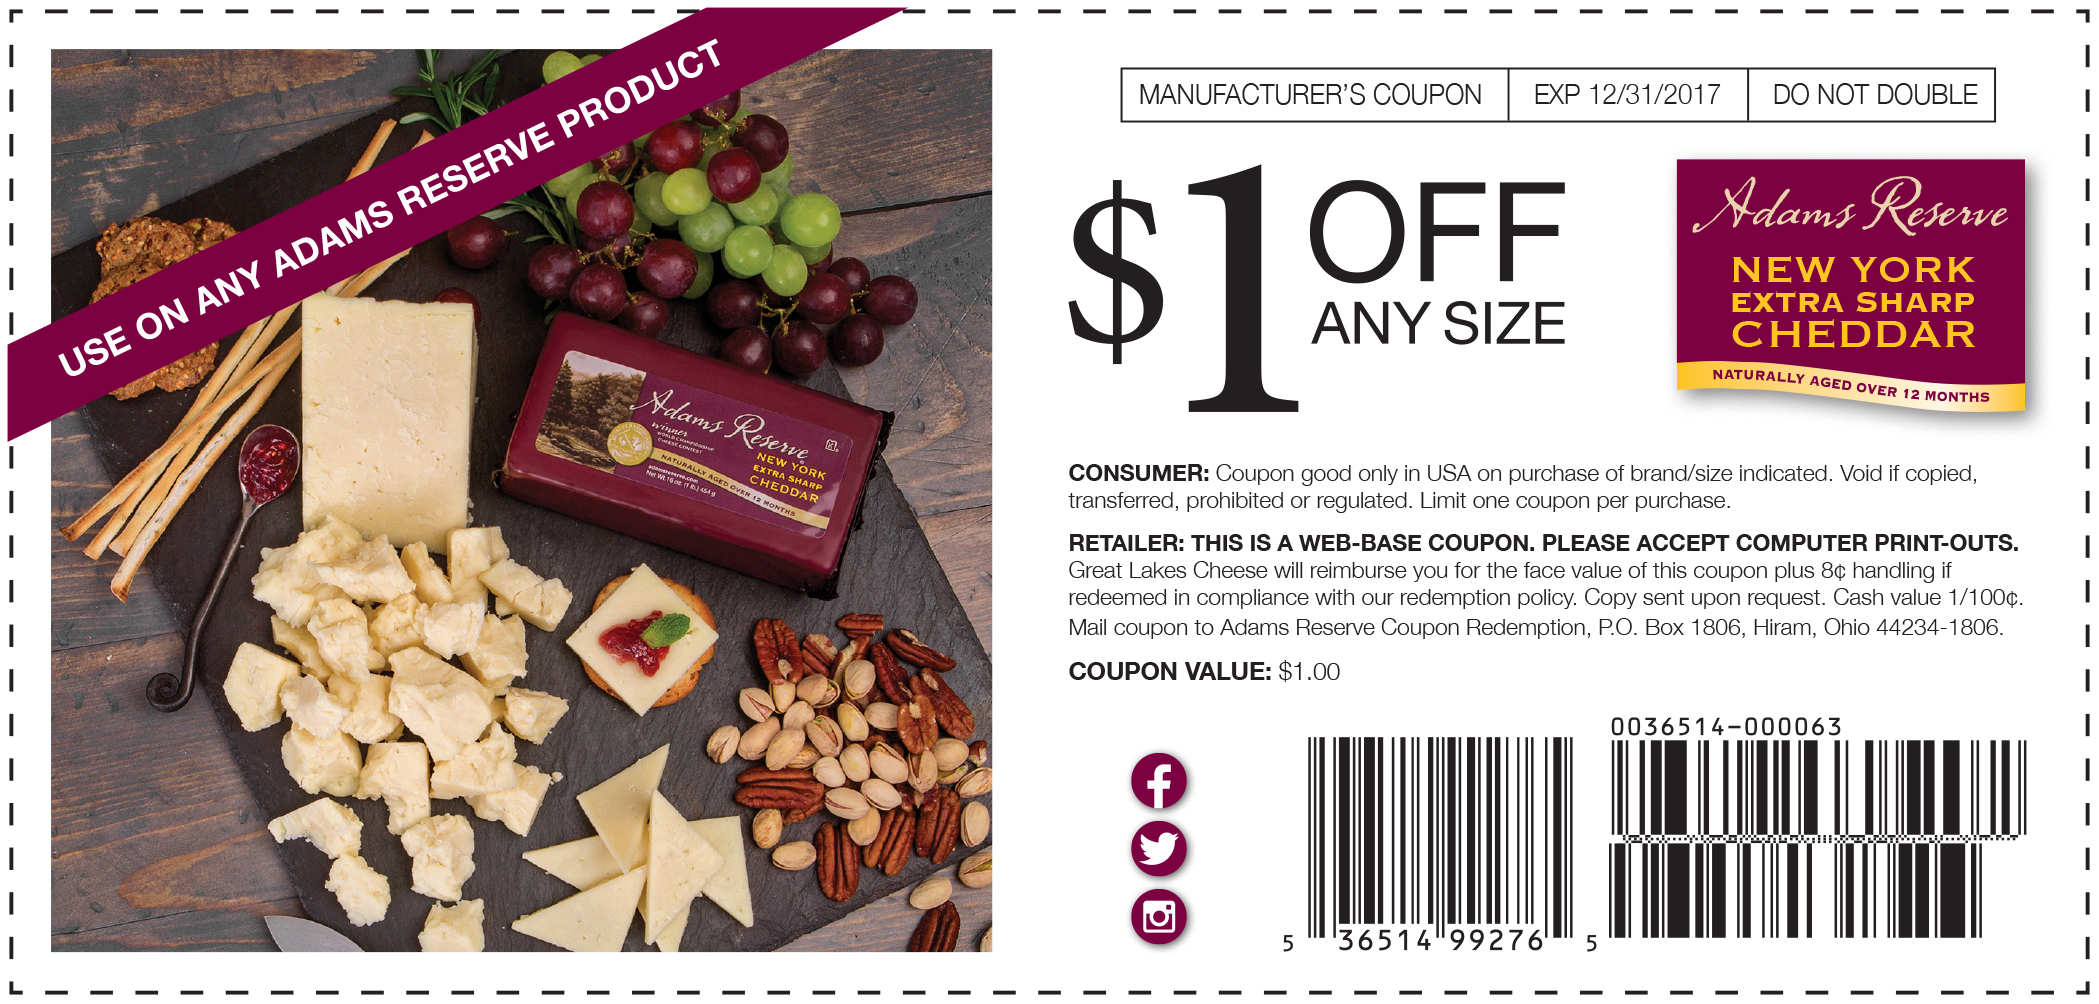 Adams Reserve Cheddar web coupon 2017